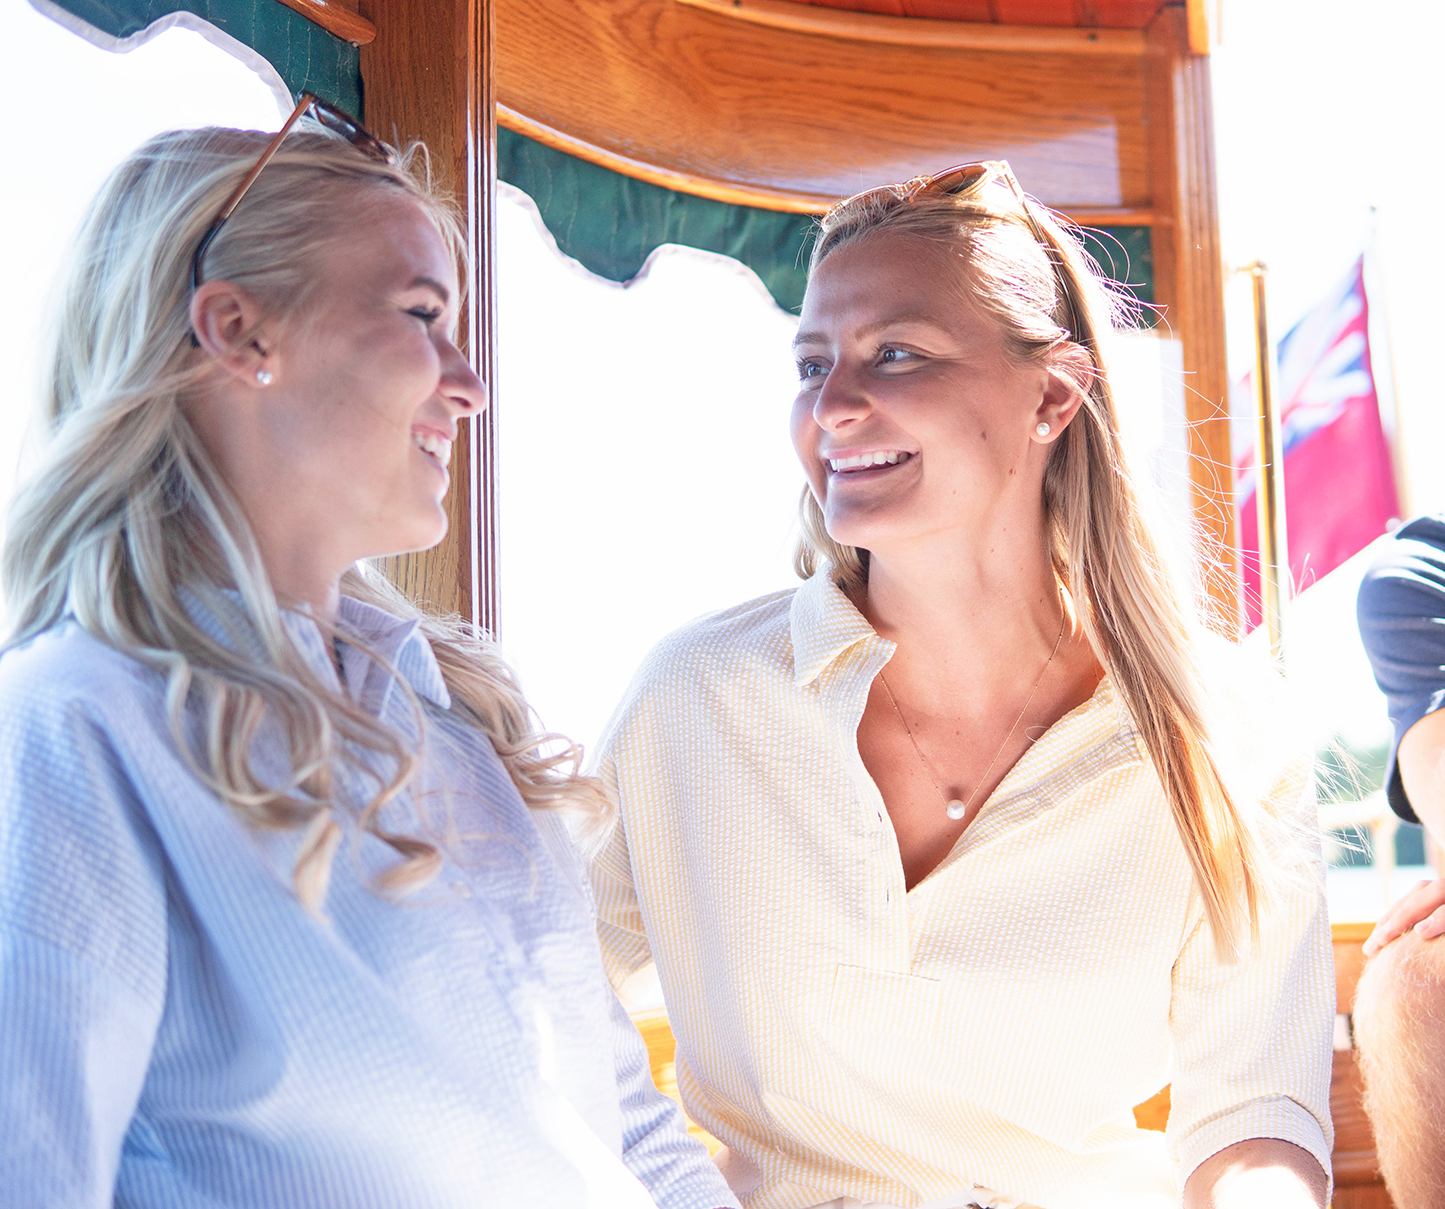 Rudder USA's Sea Salt Shirt in light blue and yellow. Two women wearing Sea Sale Shirt on a boat.